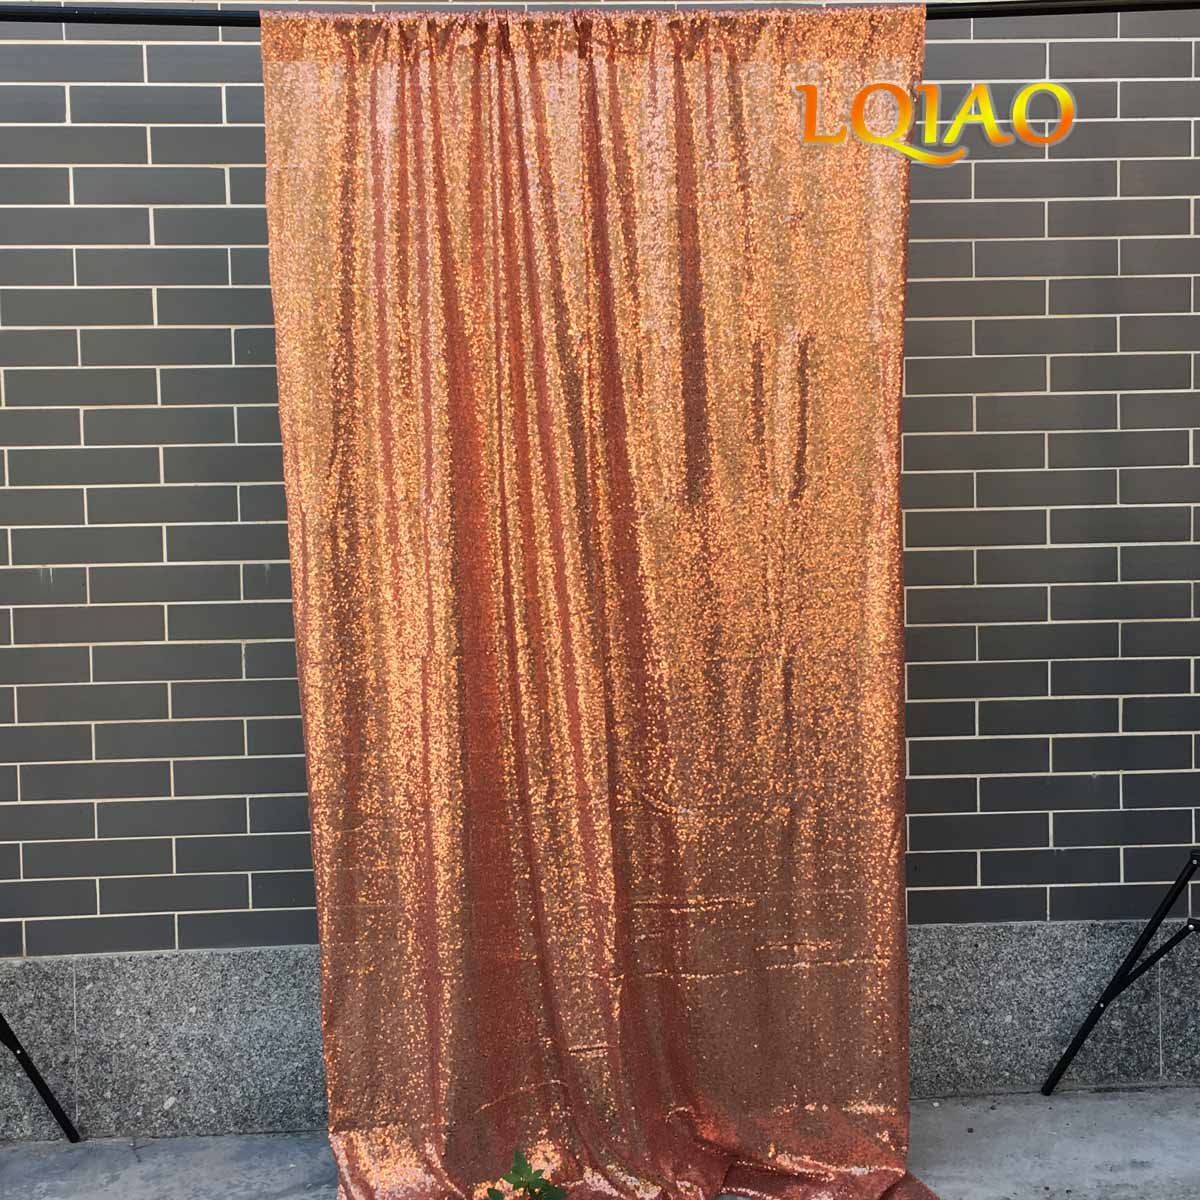 LQIAO Wedding Christmas Backdrop Glitter Rose Gold 4FTx10FT Sequin Backdrop Window Curtain Photo Booth Photography Party Decoration